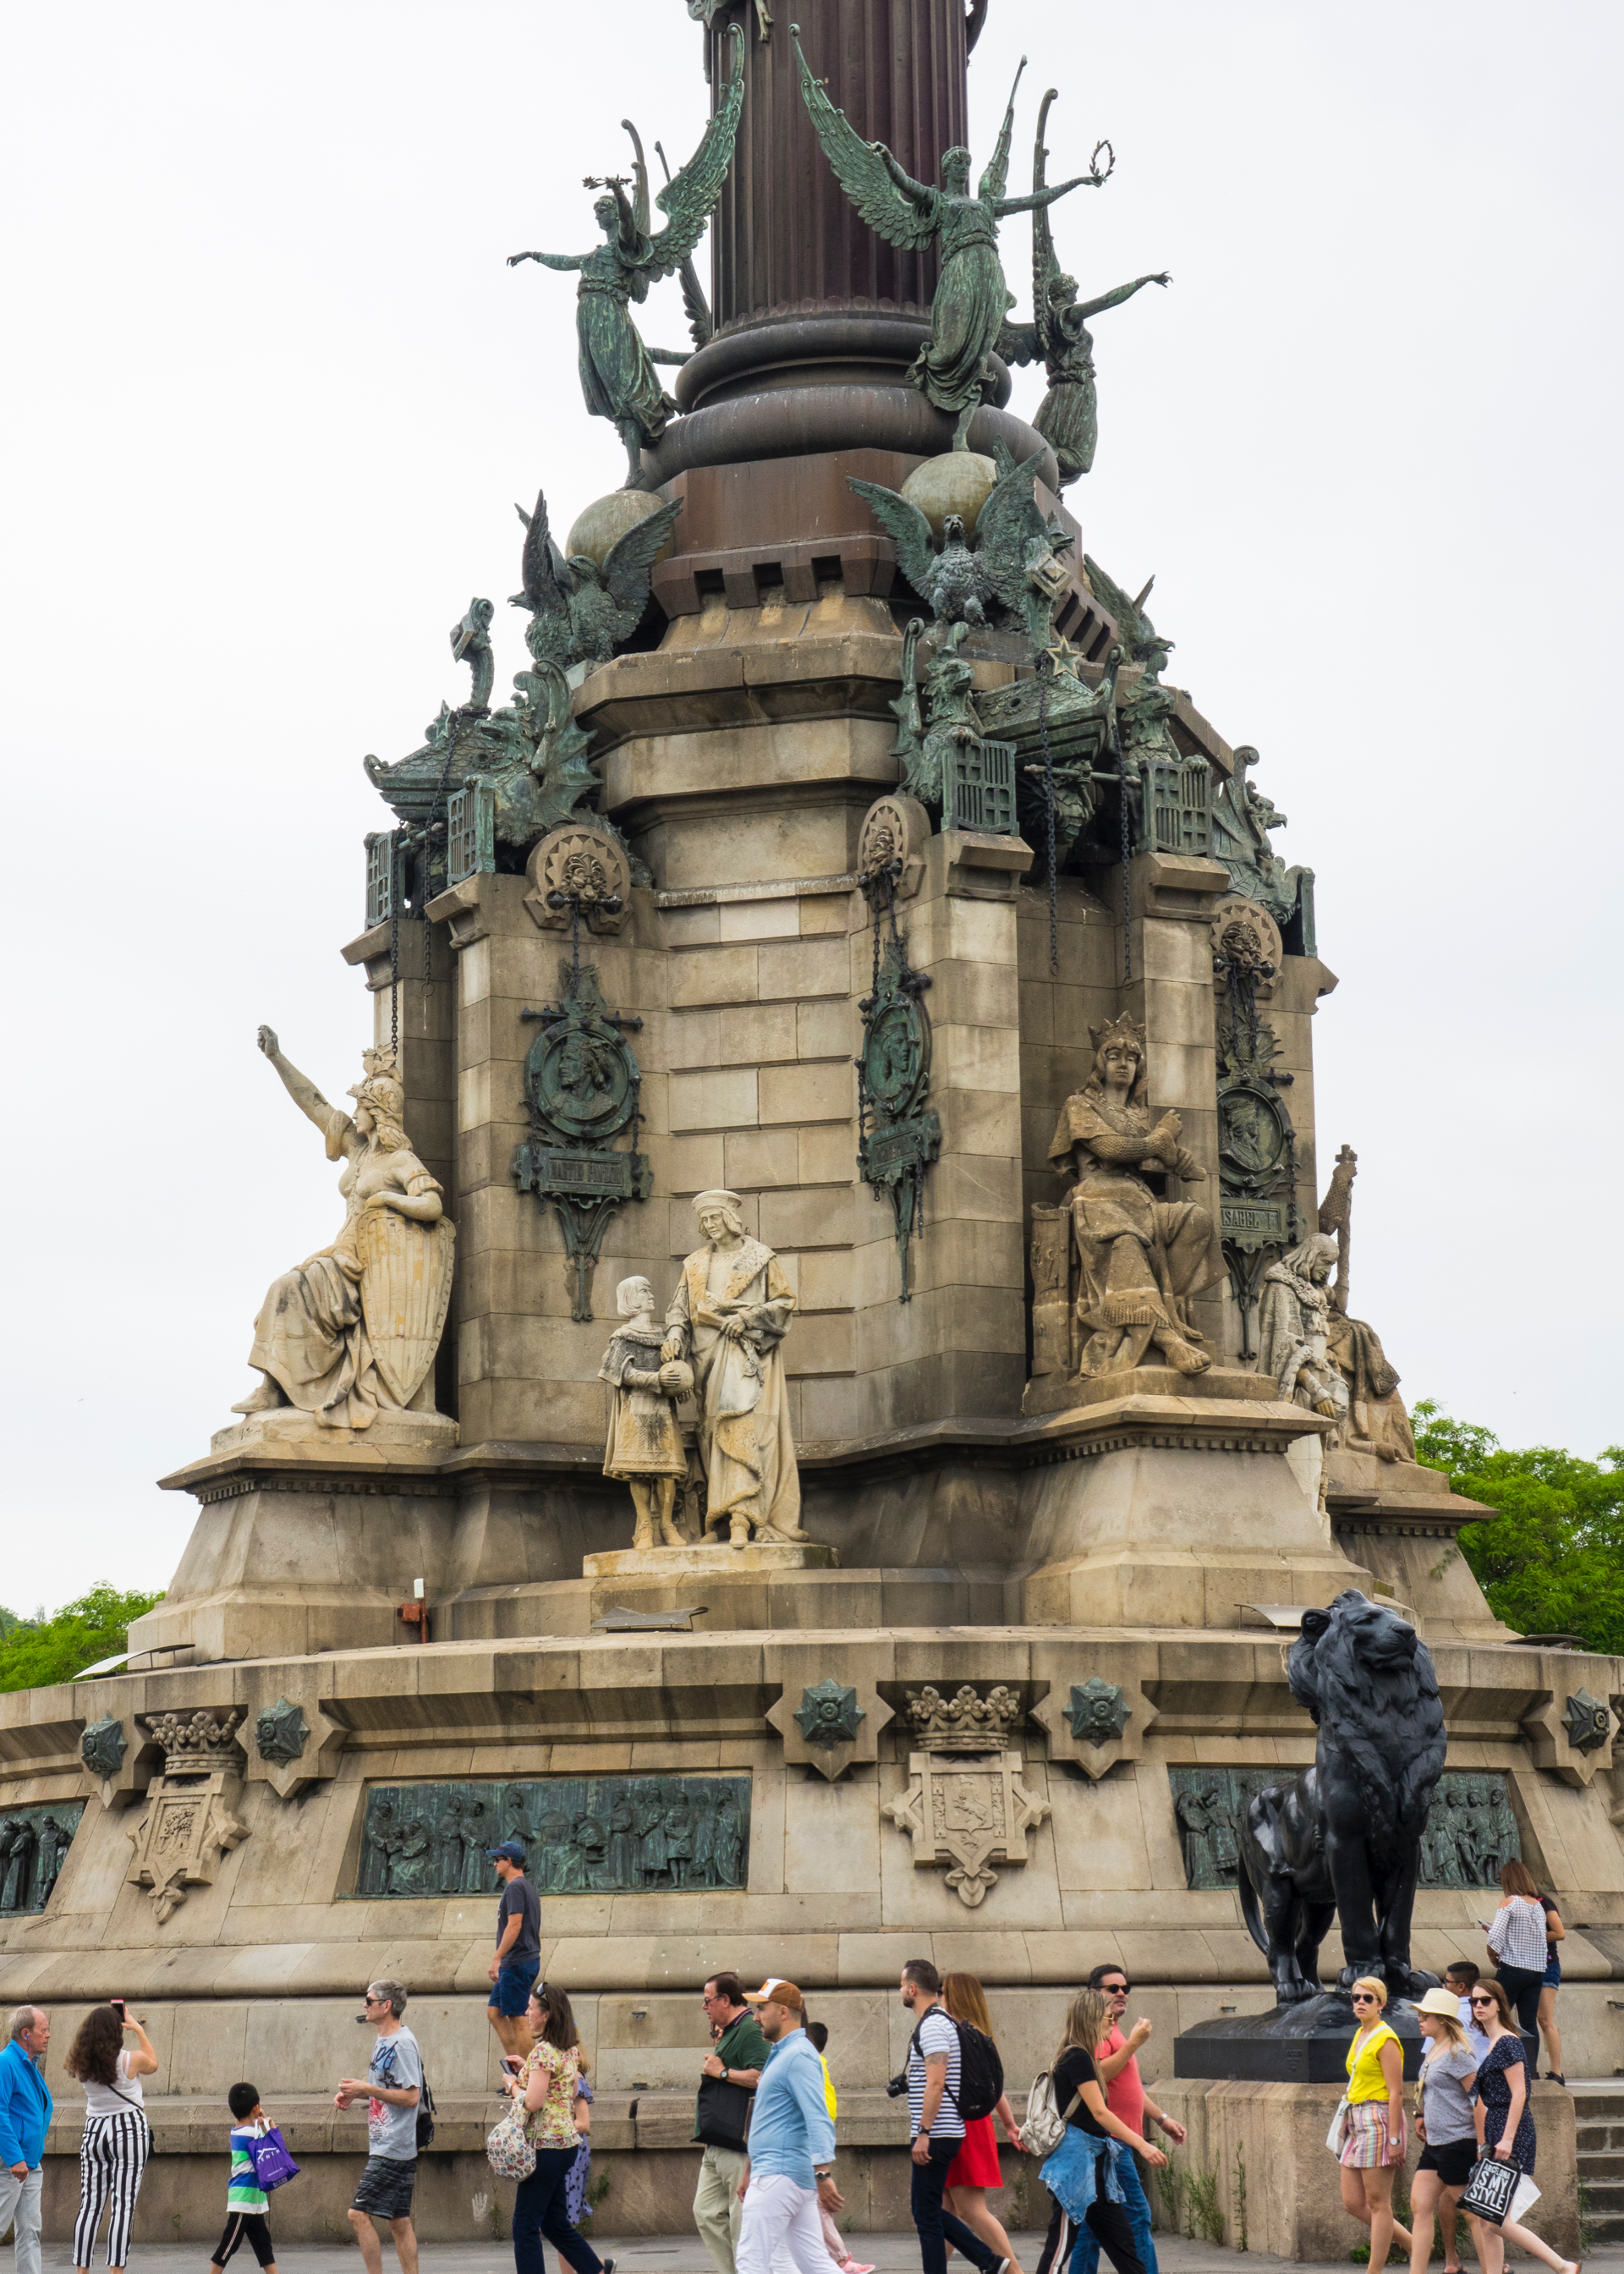 It was constructed for the Exposición Universal de Barcelona in 1888, in honor of Columbus' first voyage to the Americas.